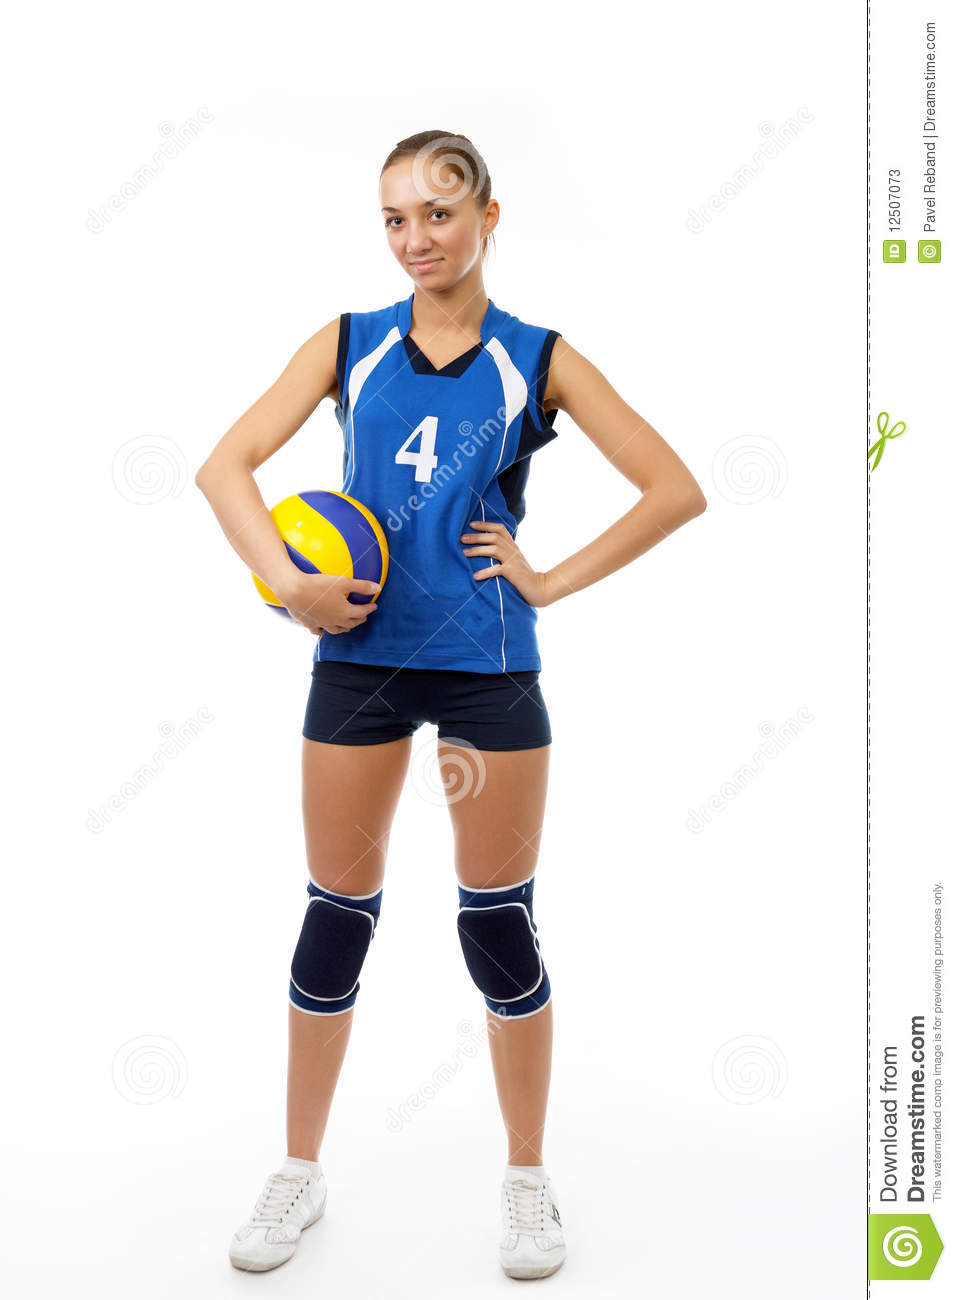 Young, Beauty Volleyball Player Stock Photos - Image: 12507073